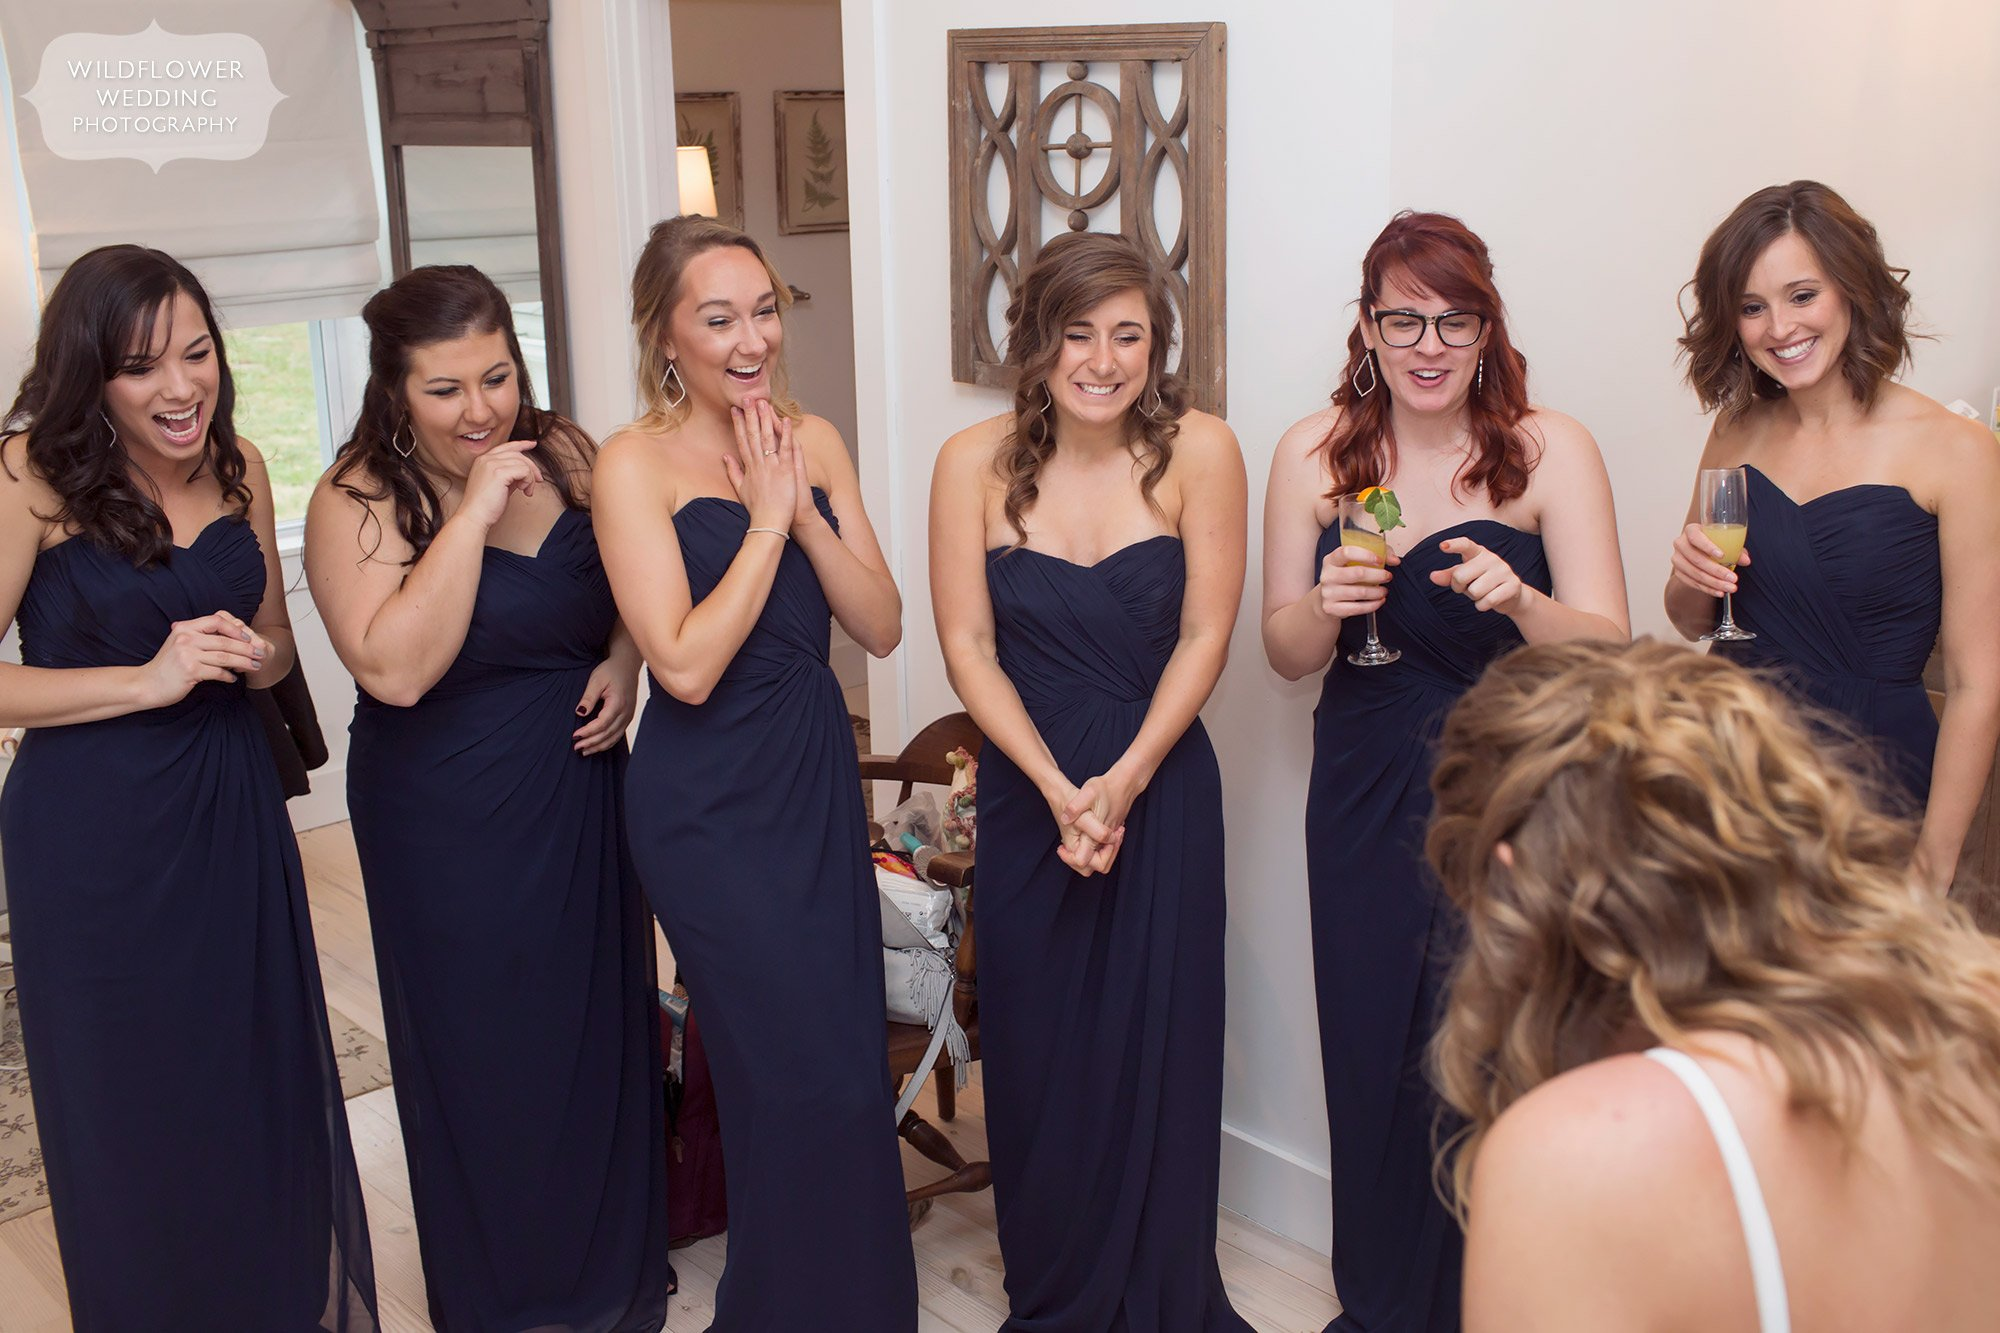 The bridesmaids reaction to the bride wearing her wedding dress in the bridal cottage at Blue Bell Farm.